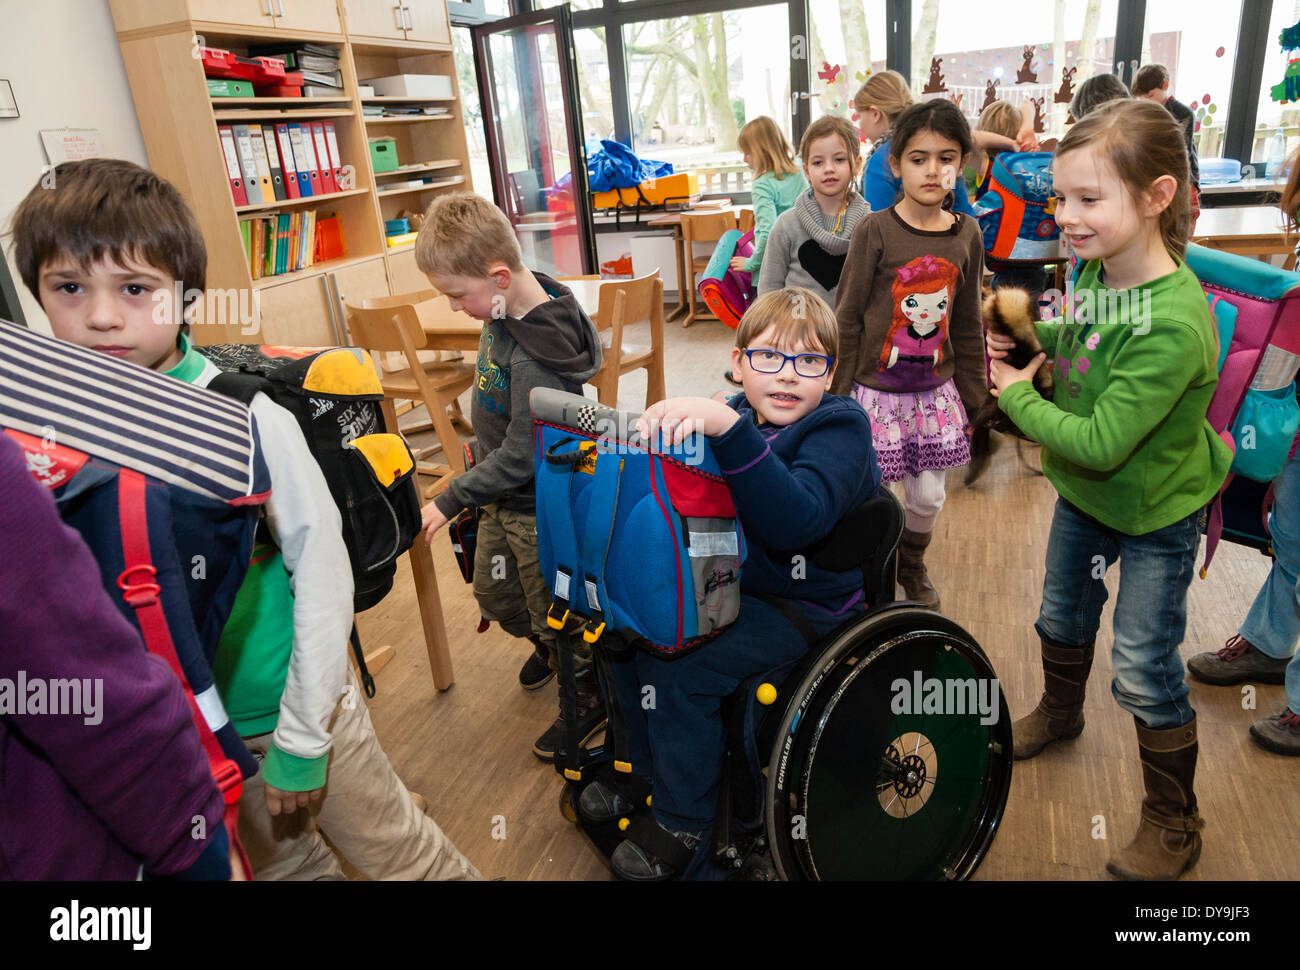 Non-disabled and disabled students (in this case a boy in a wheel chair) learn together in the same class in a primary school. - Stock Image